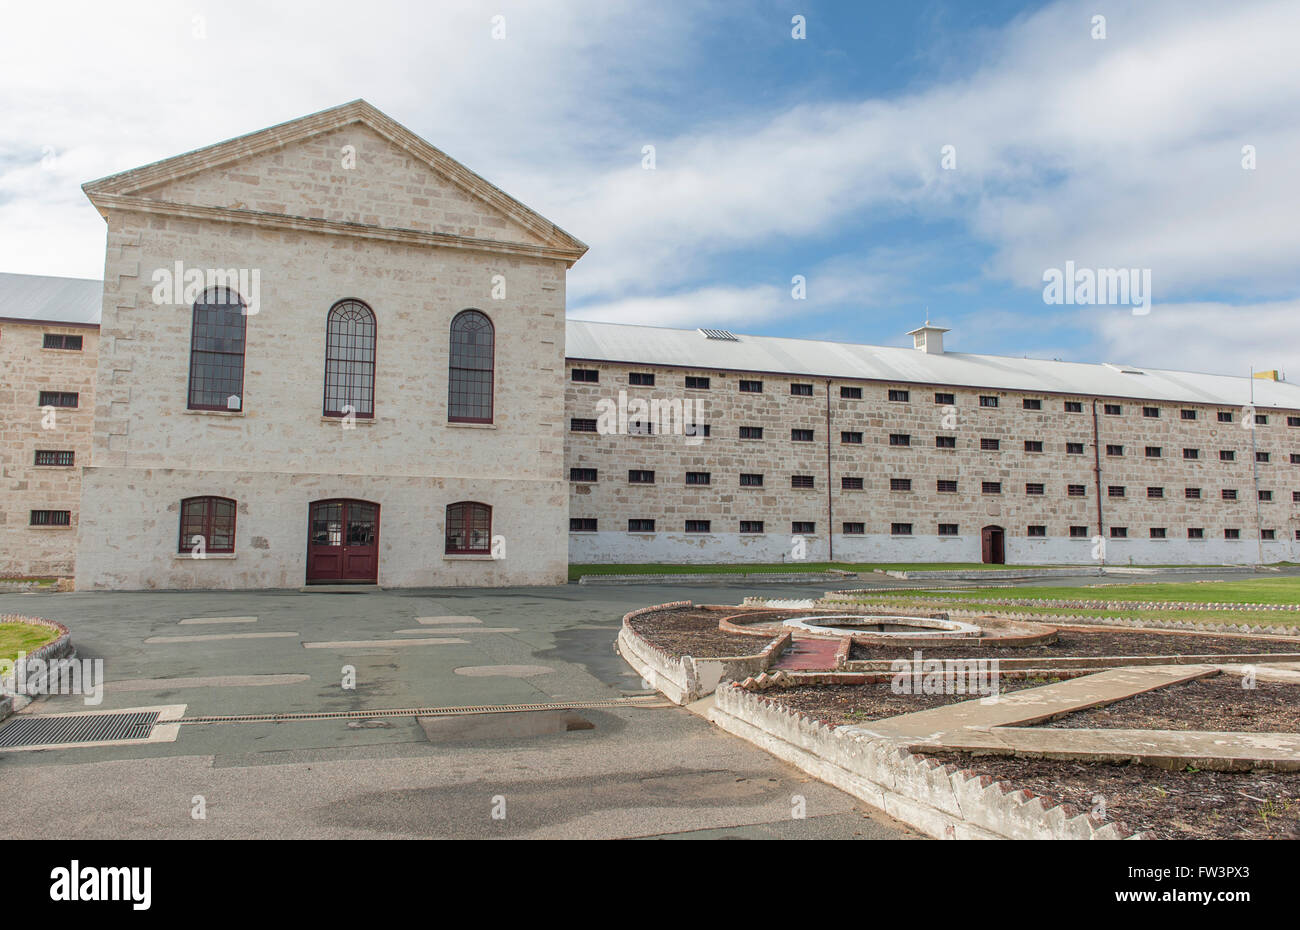 Fremantle prison near Perth Western Australia, built by convicts in the 1850s - Stock Image